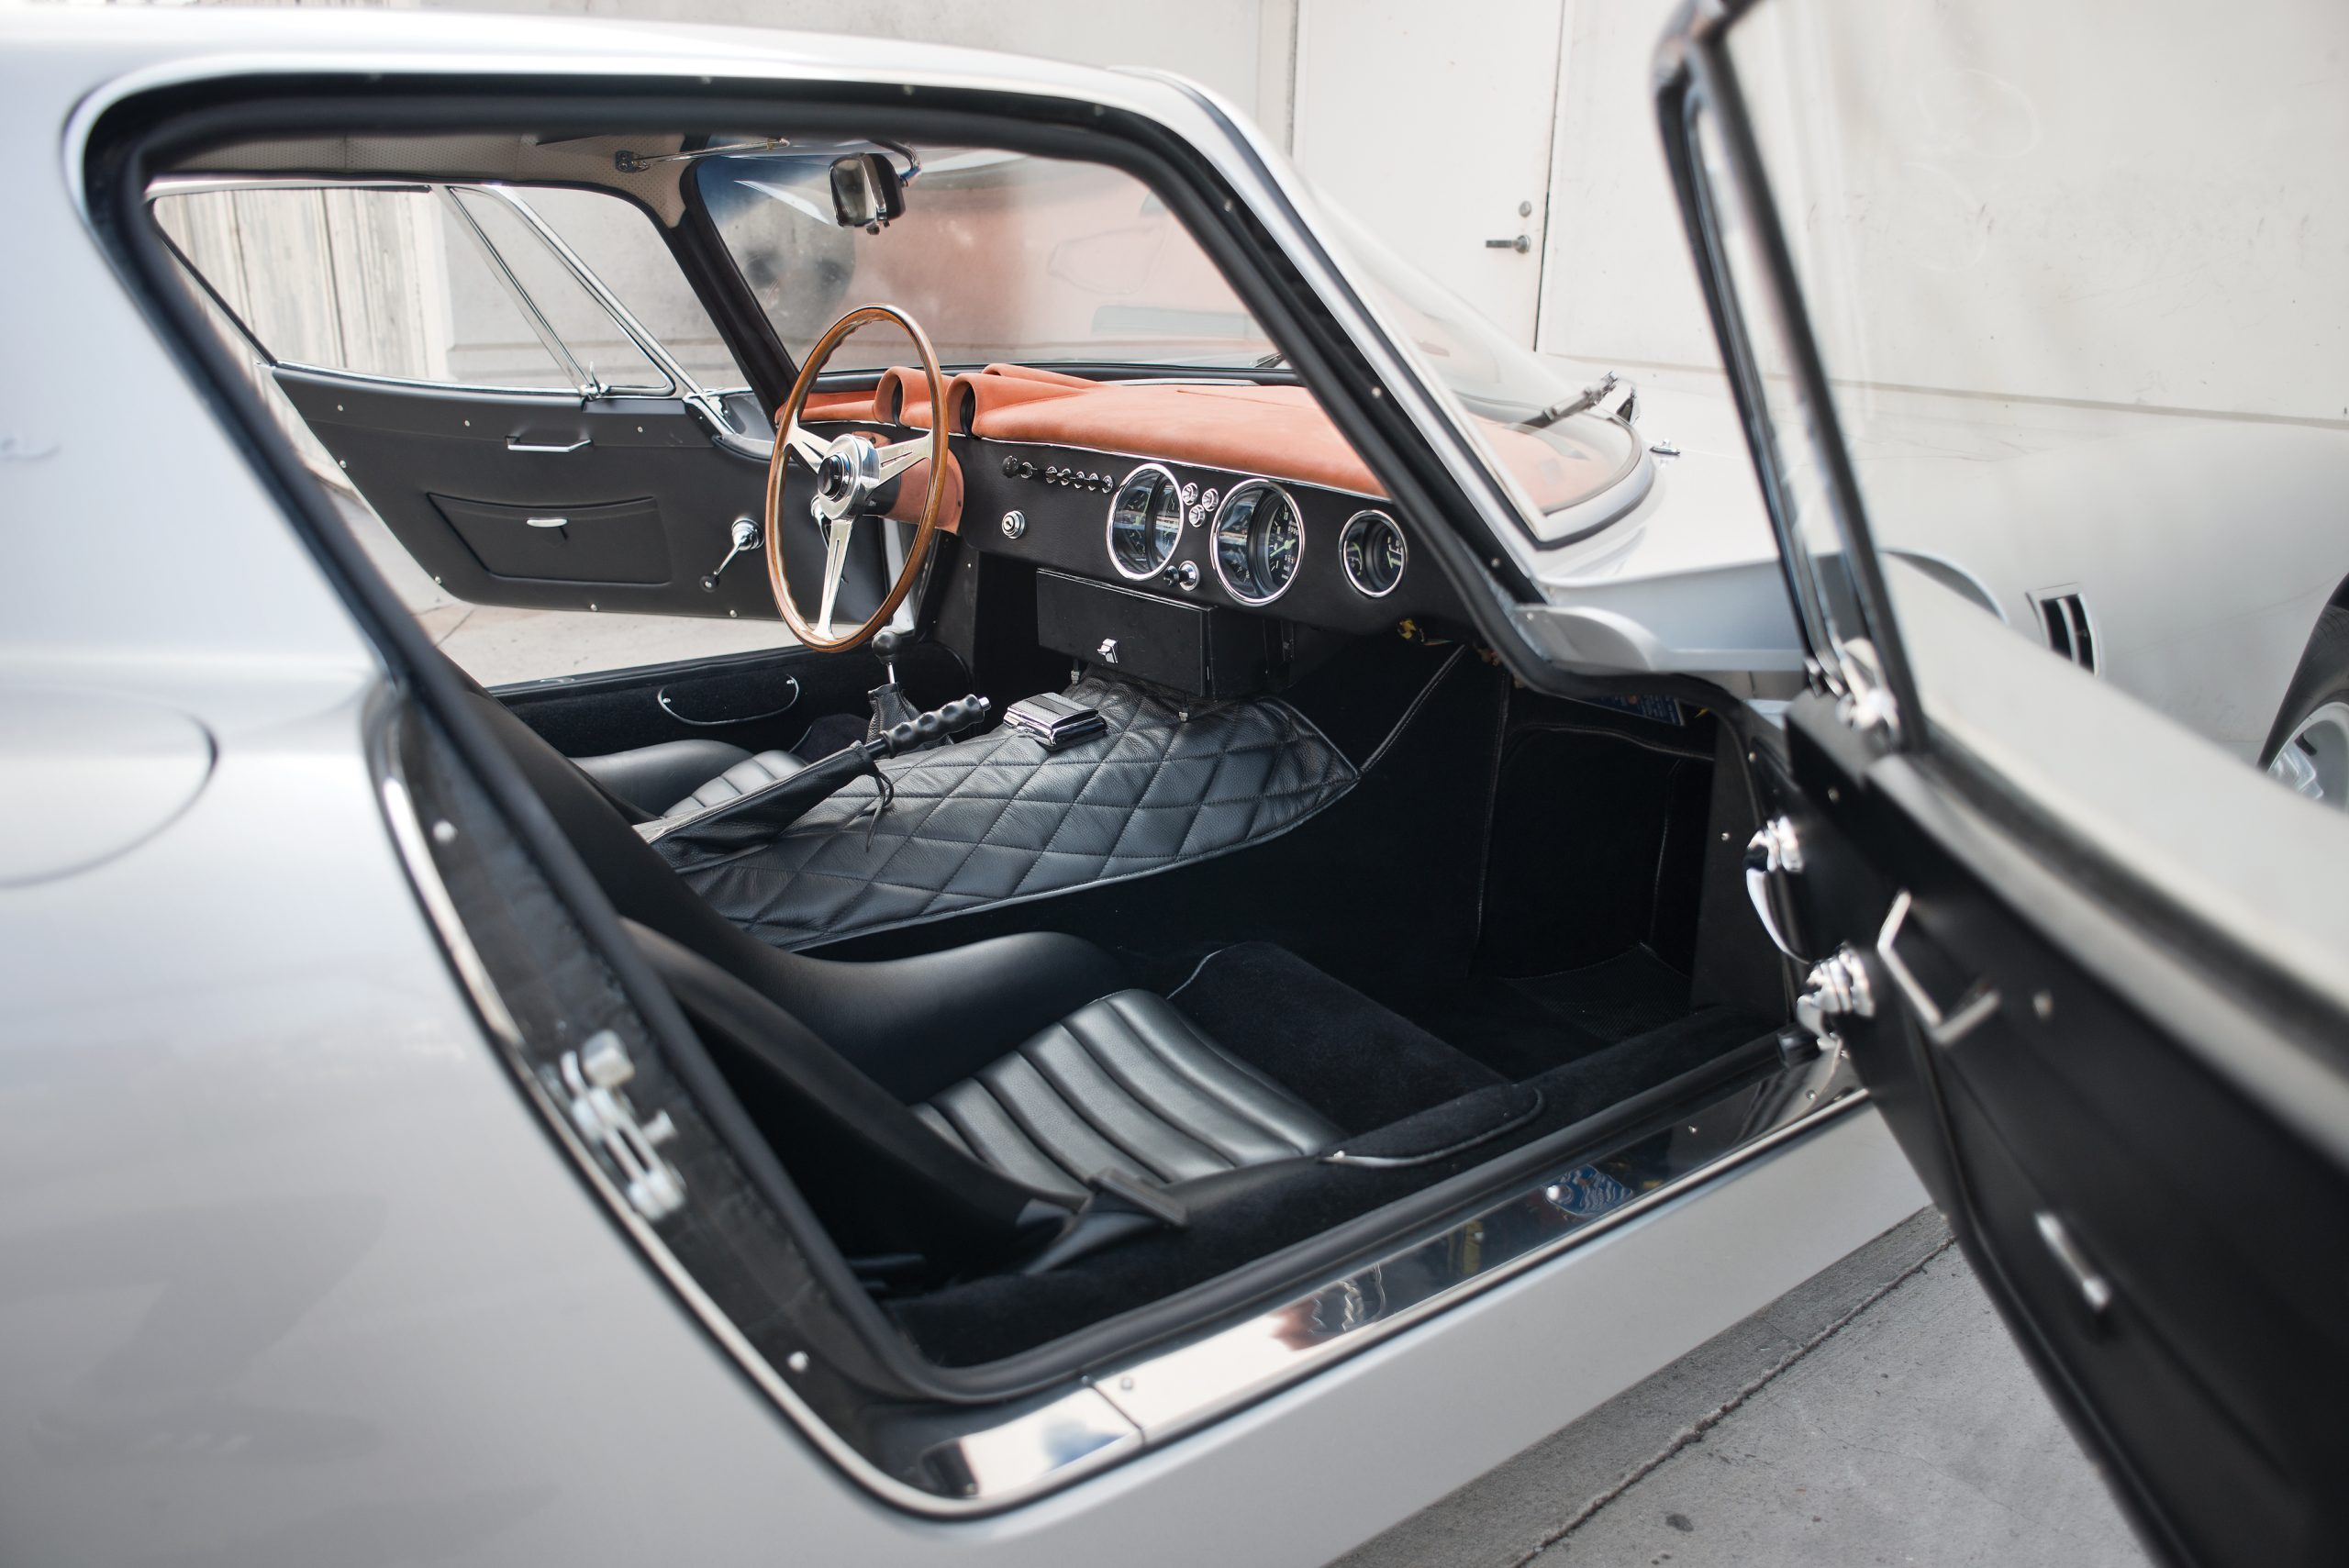 1965 Bizzarrini 5300 GT Strada Alloy interior